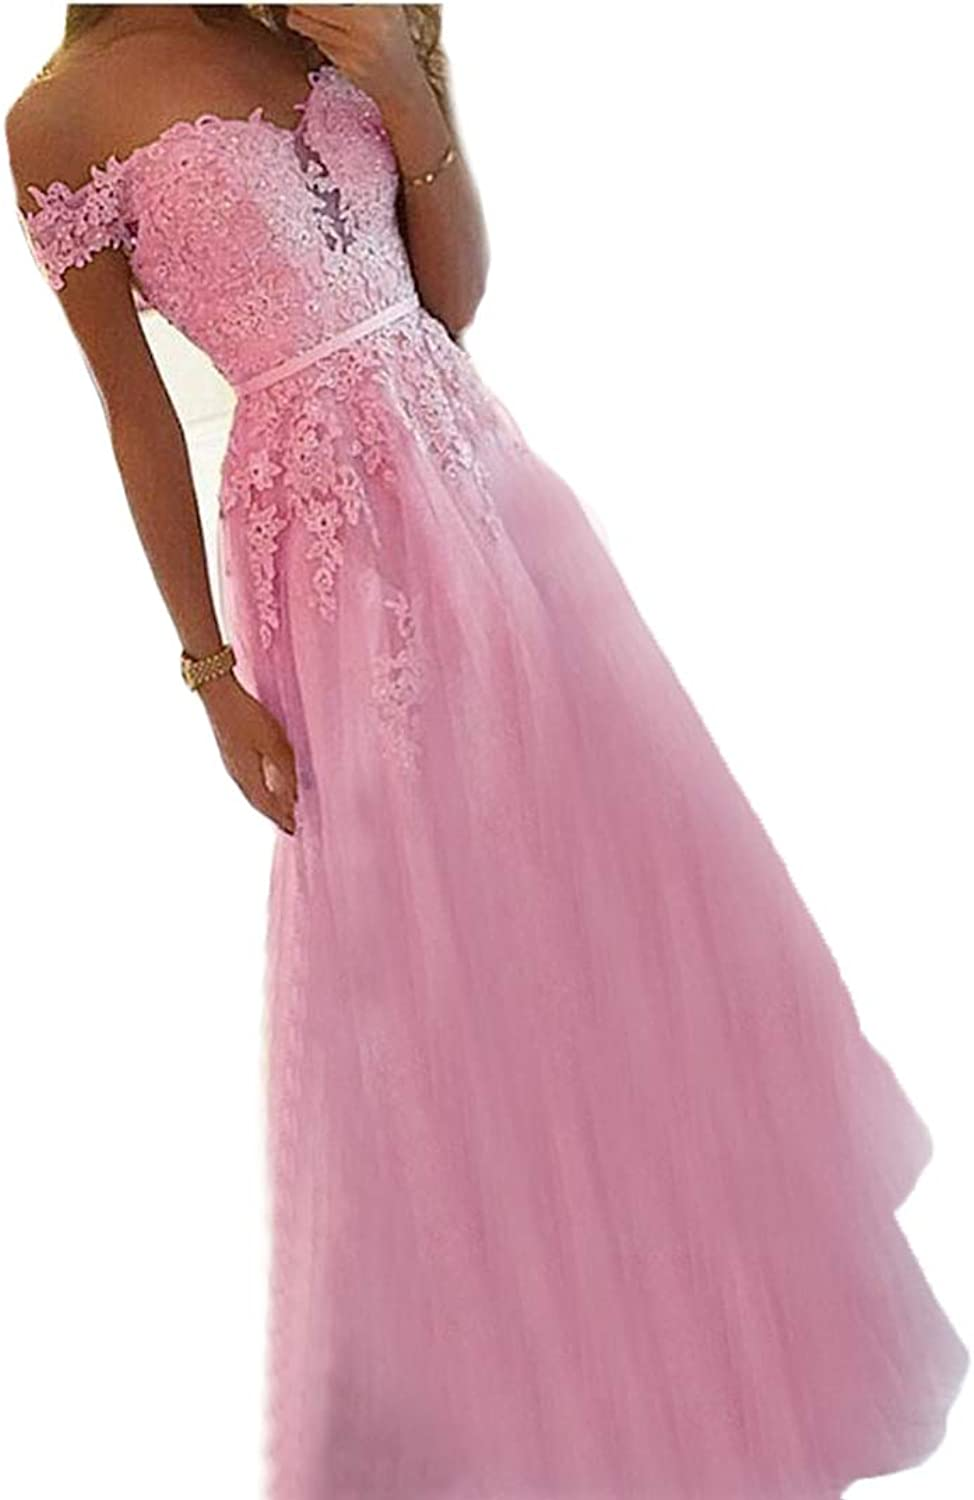 WZW Elegant Pink Prom Dresses Appliques Tulle Aline Evening Formal Dress VNeck